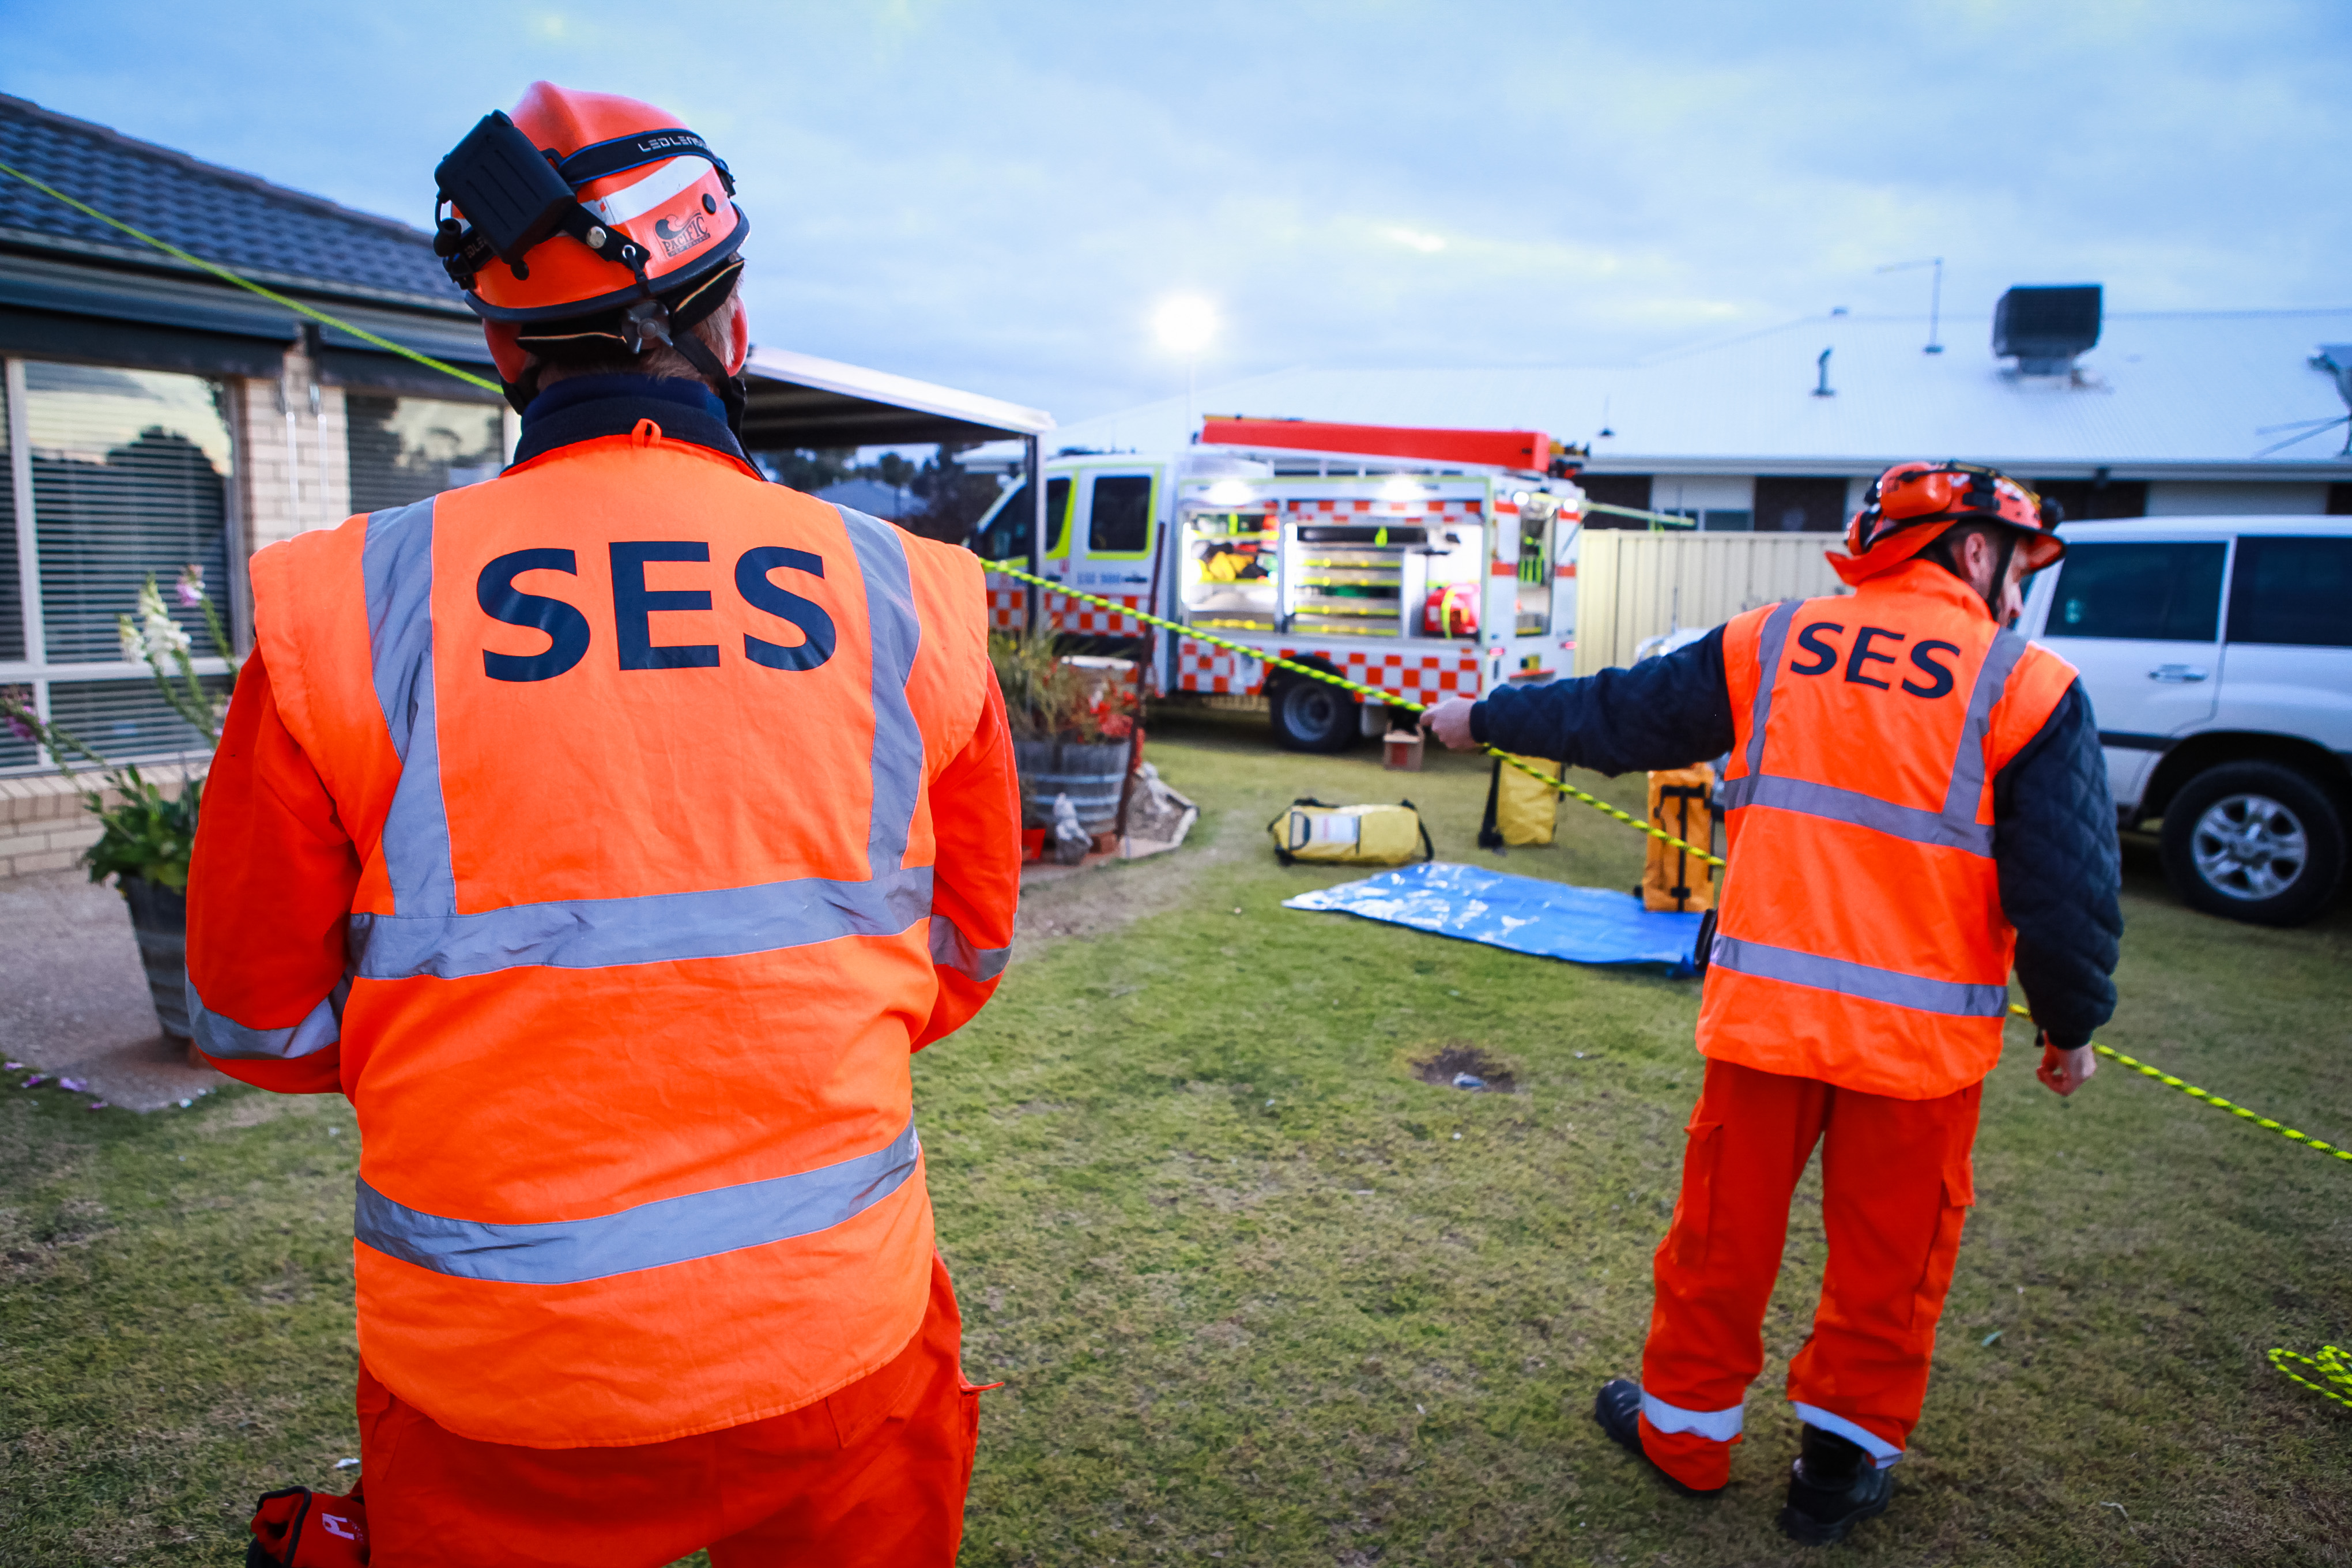 NSW SES Illawarra volunteers awarded for 418 years of service